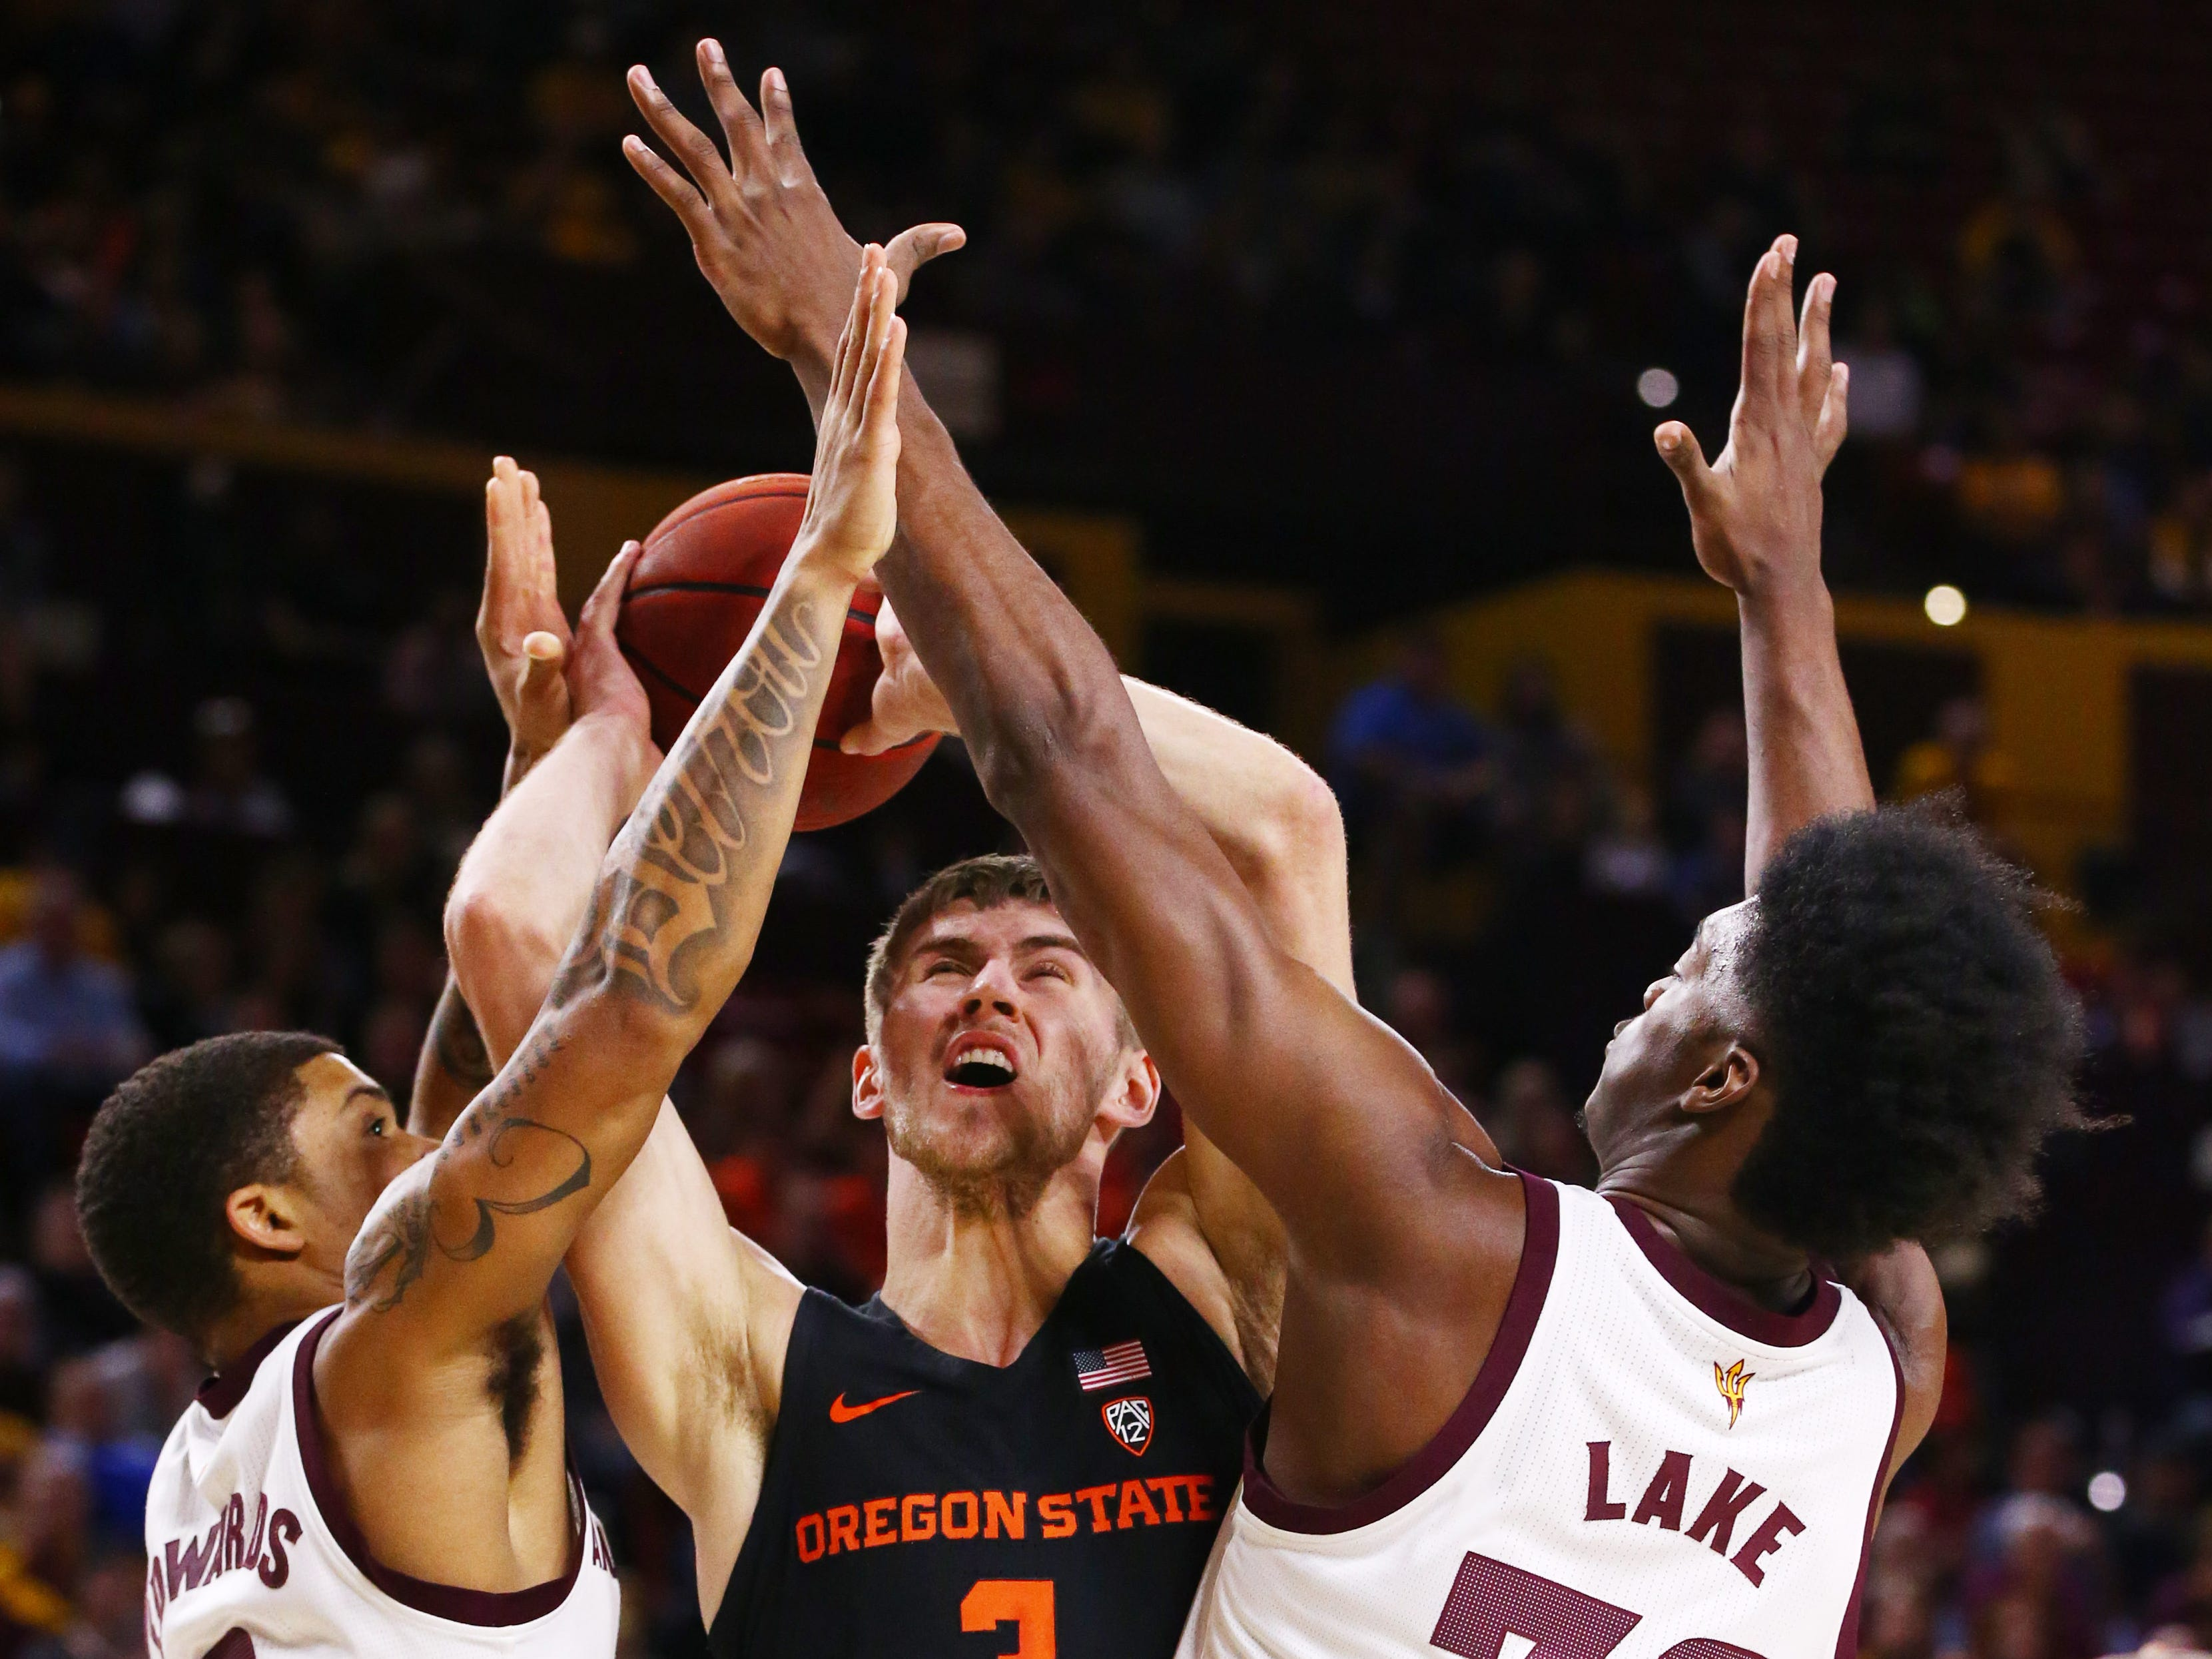 Arizona State Sun Devils Rob Edwards and De'Quon Lake pressure Oregon State Beavers forward Tres Tinkle in the first half on Jan. 17 at Wells Fargo Arena in Tempe.